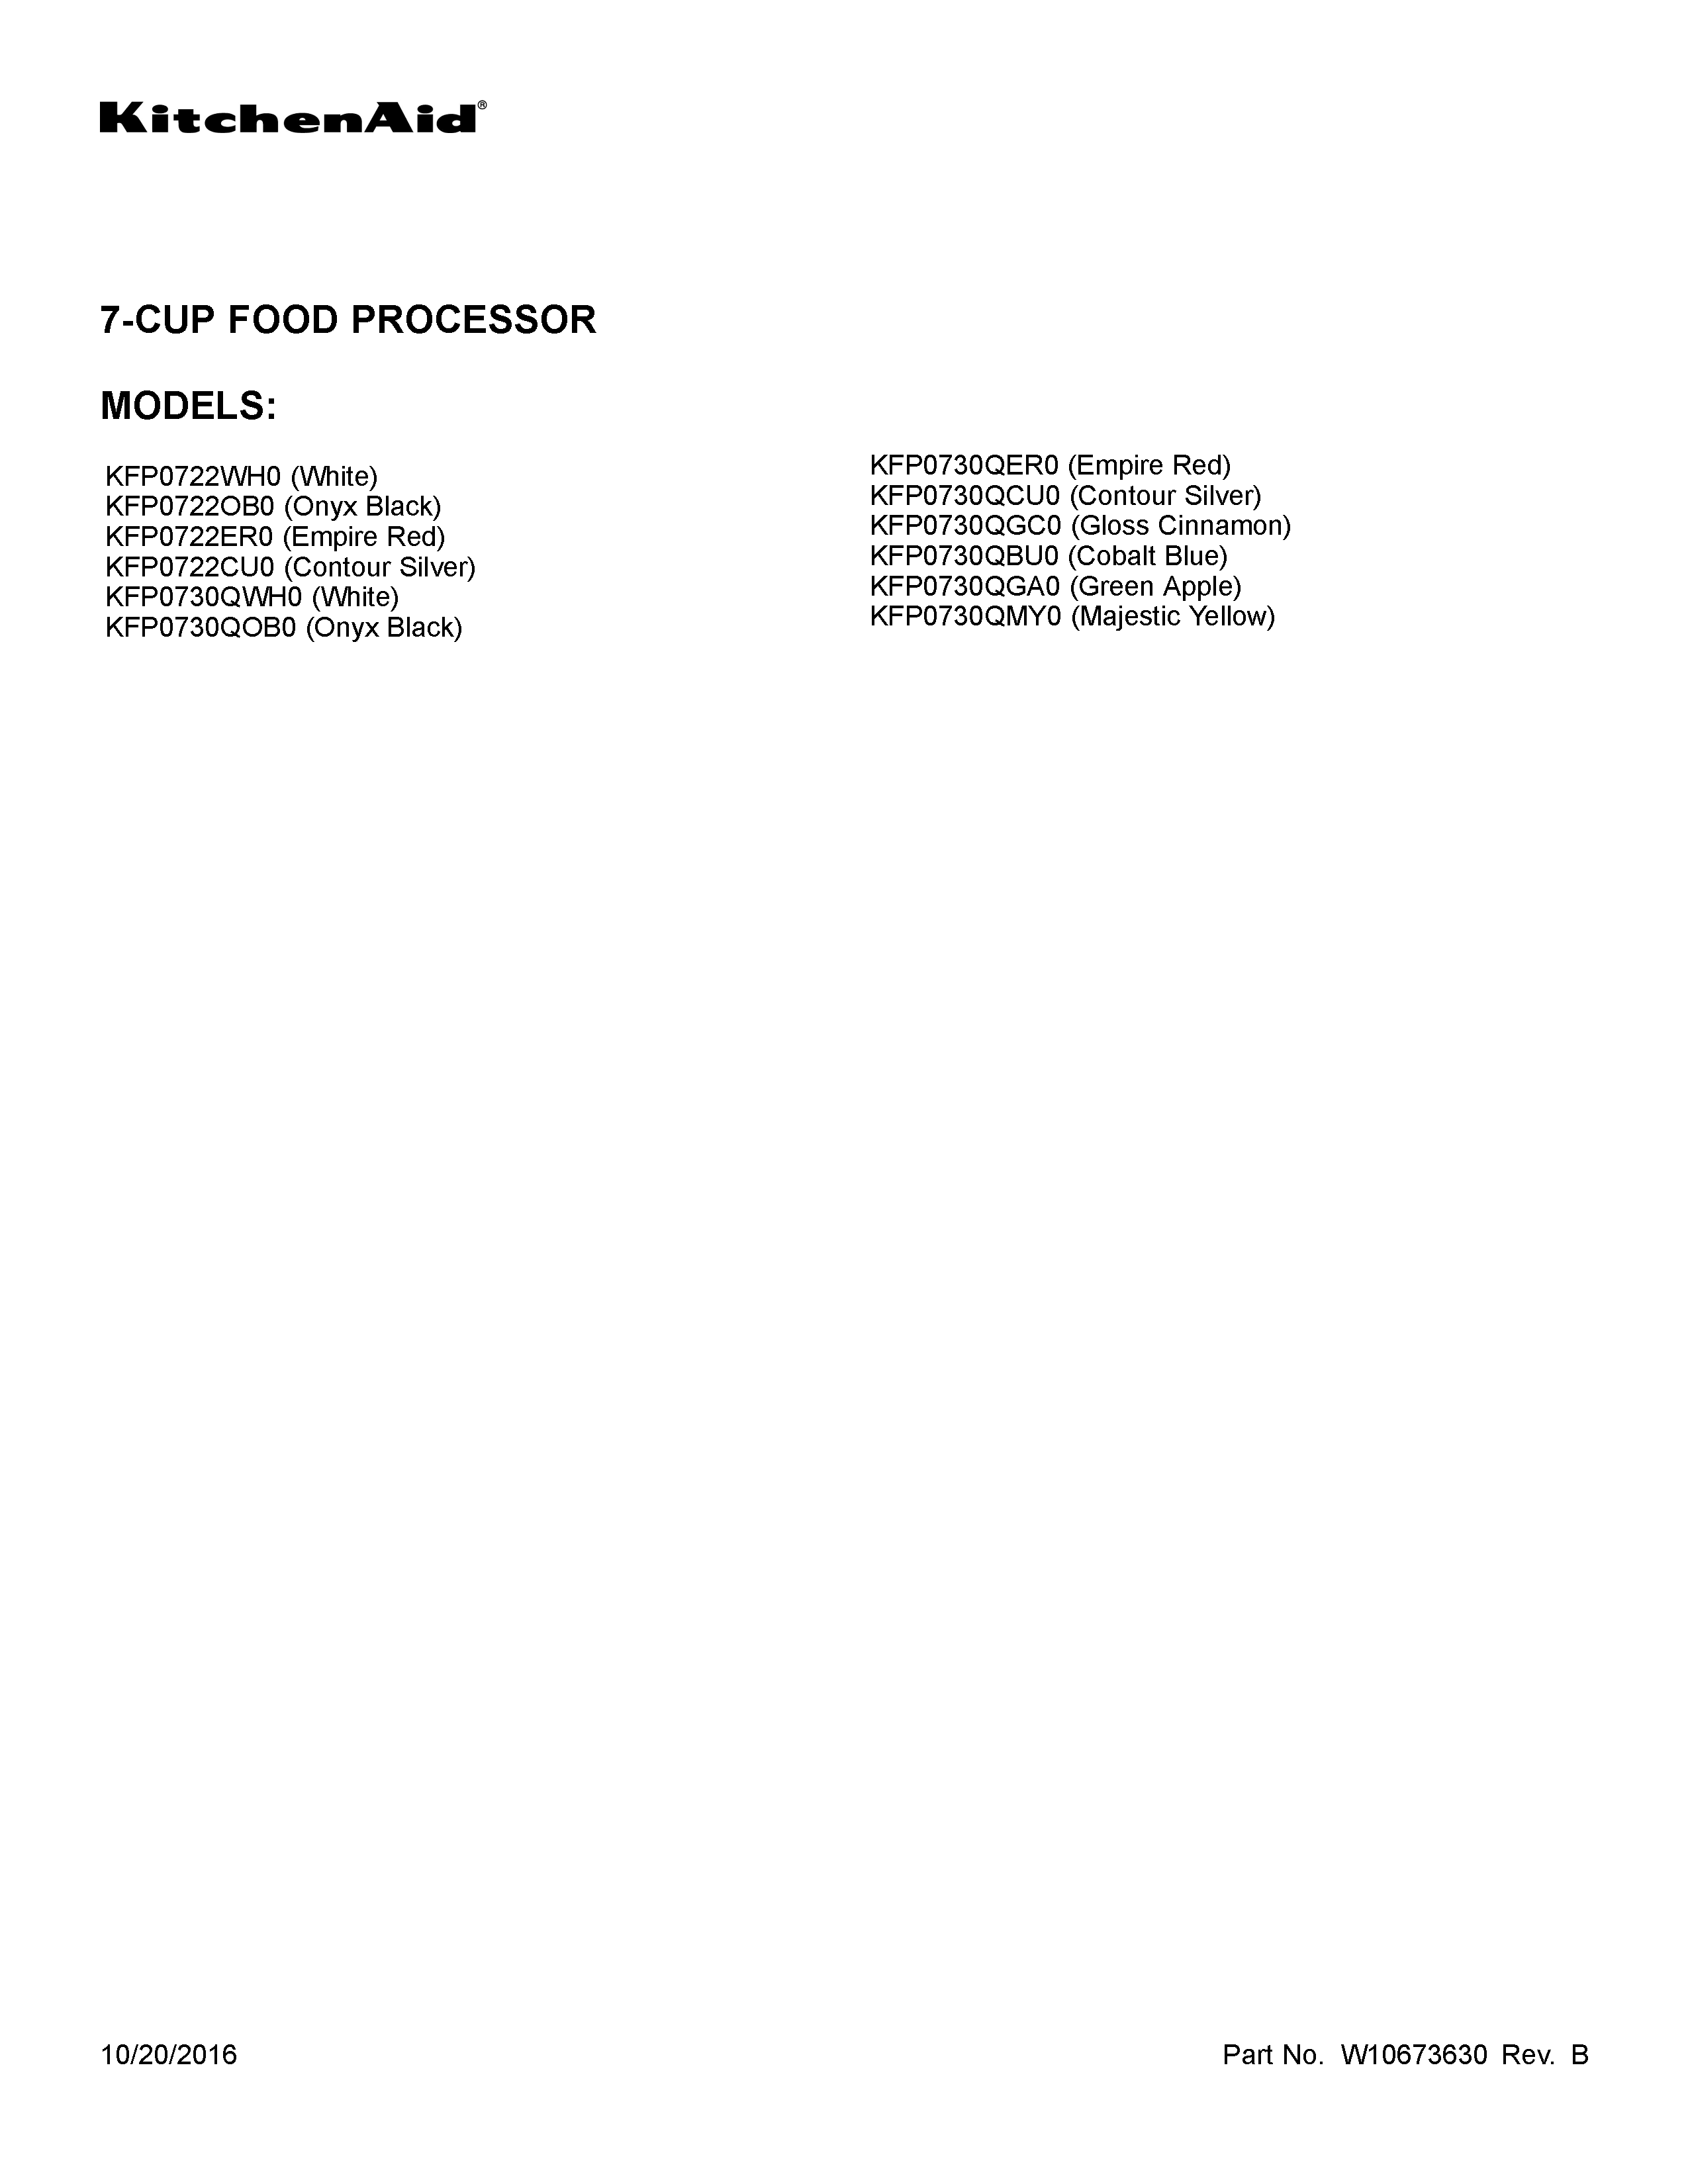 KitchenAid KFP0730QOB0 cover sheet diagram